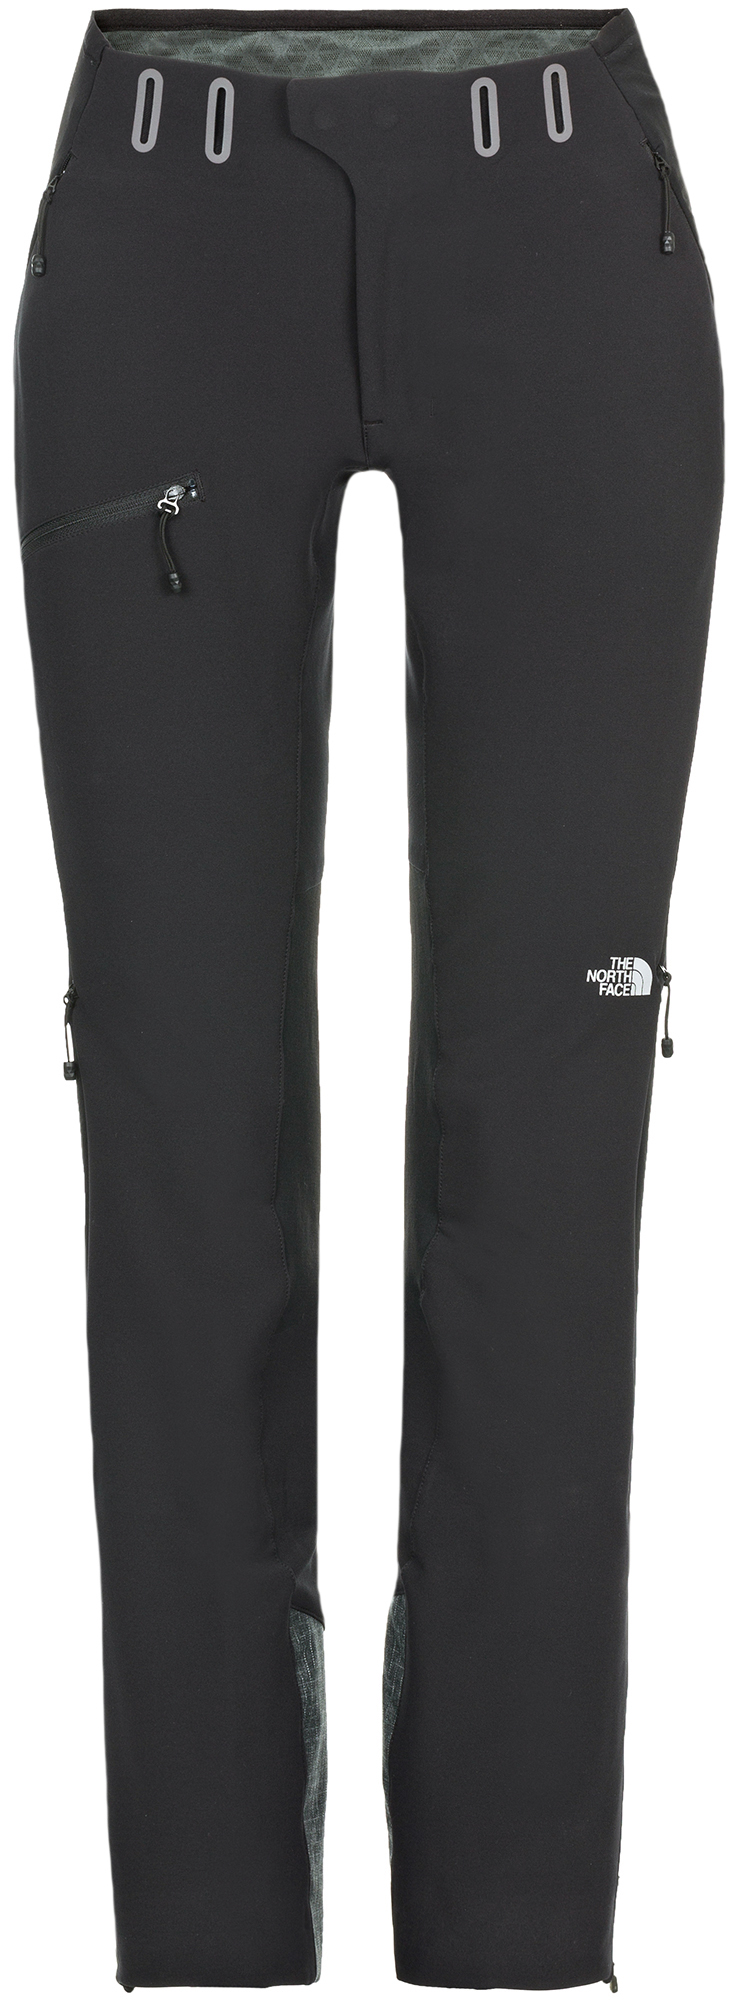 цена на The North Face Брюки женские The North Face Subarashi, размер 44